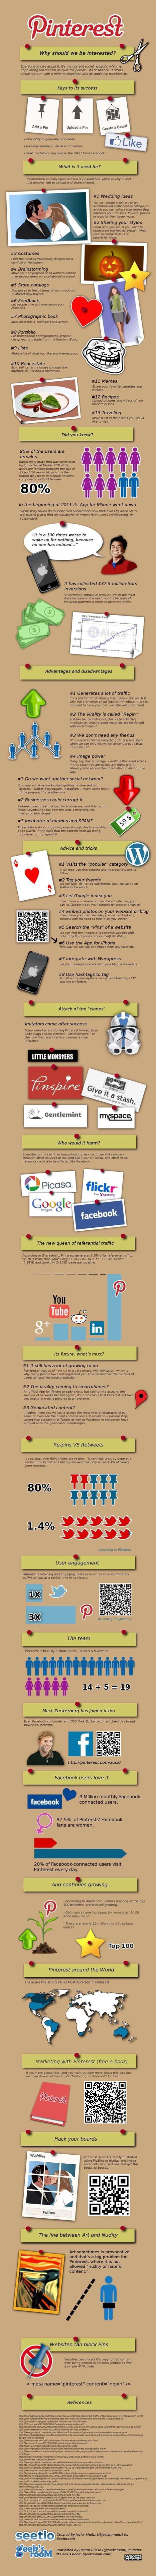 7 Mind Blowing Pinterest Infographics | Surviving Social Chaos | Scoop.it